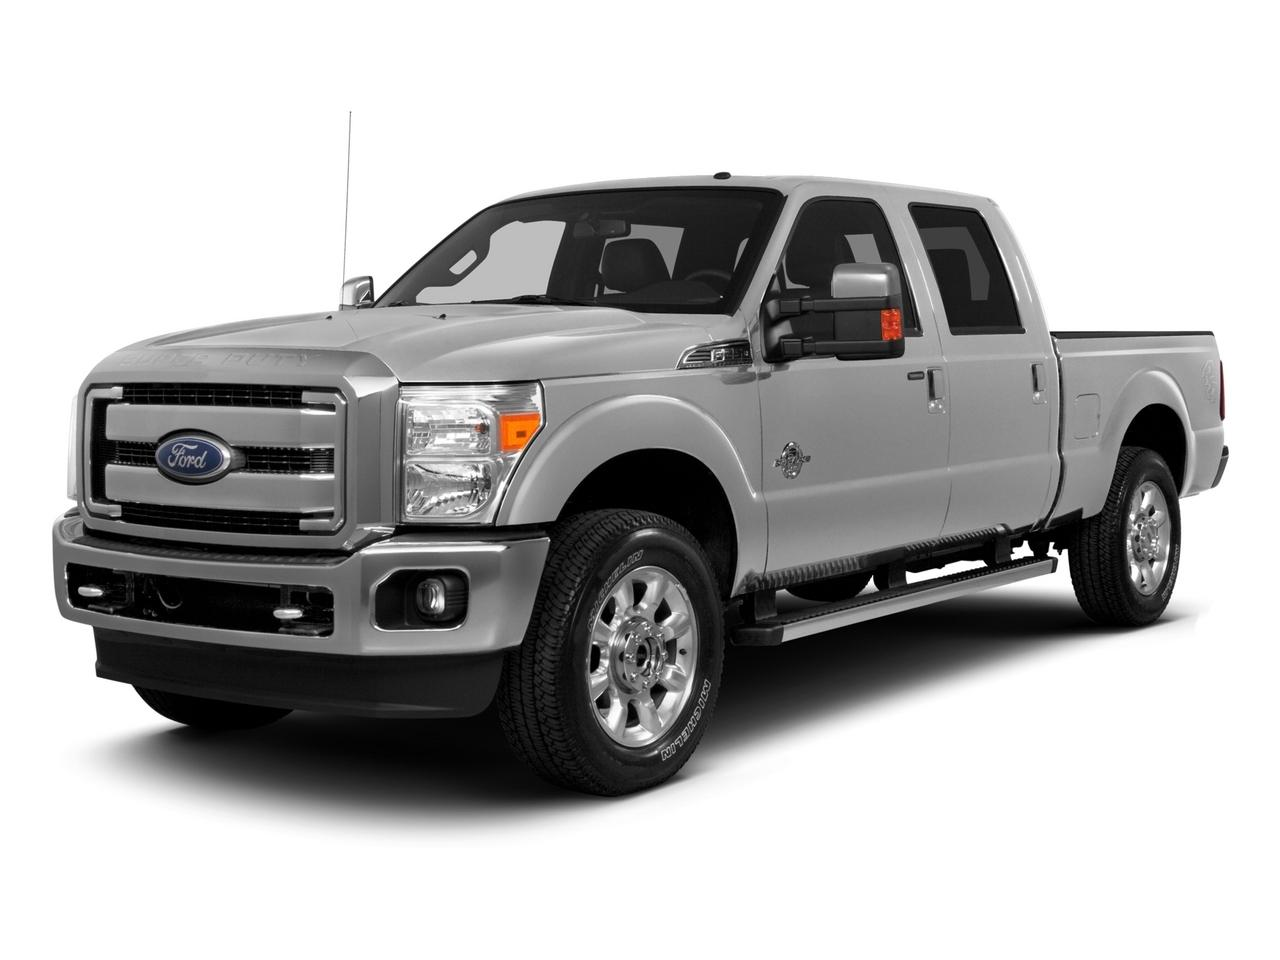 2015 Ford Super Duty F-250 SRW Vehicle Photo in Baton Rouge, LA 70806